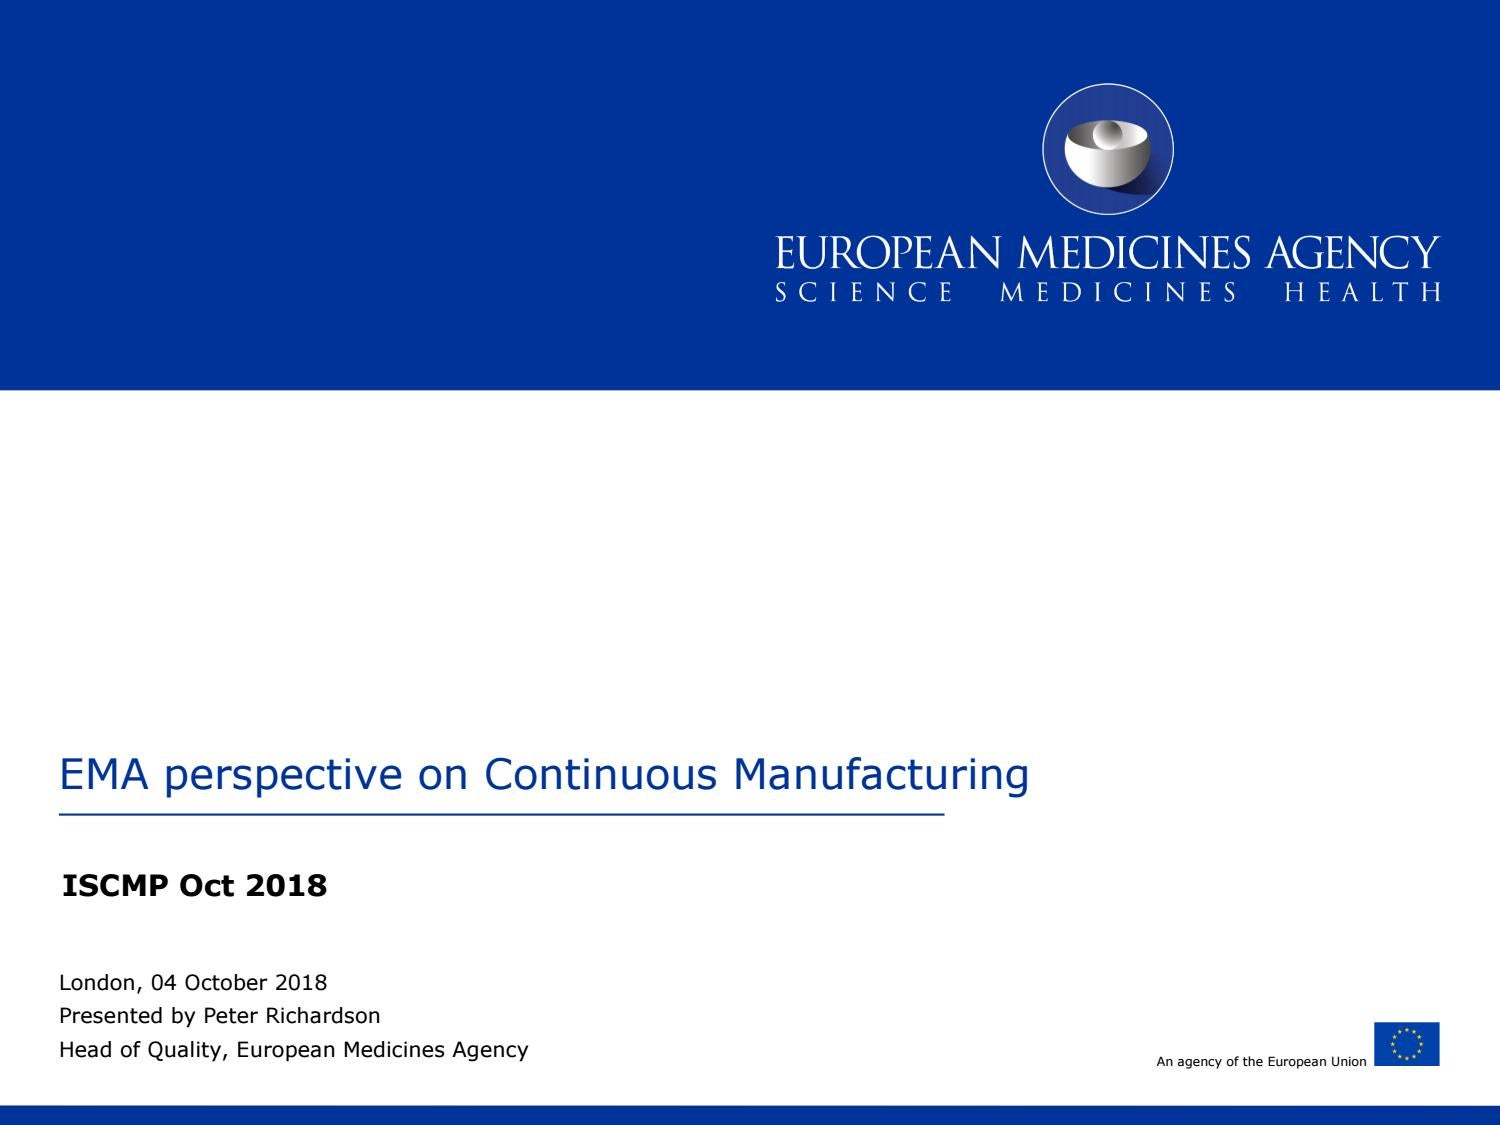 EMA perspective on Continuous Manufacturing by luxevents2